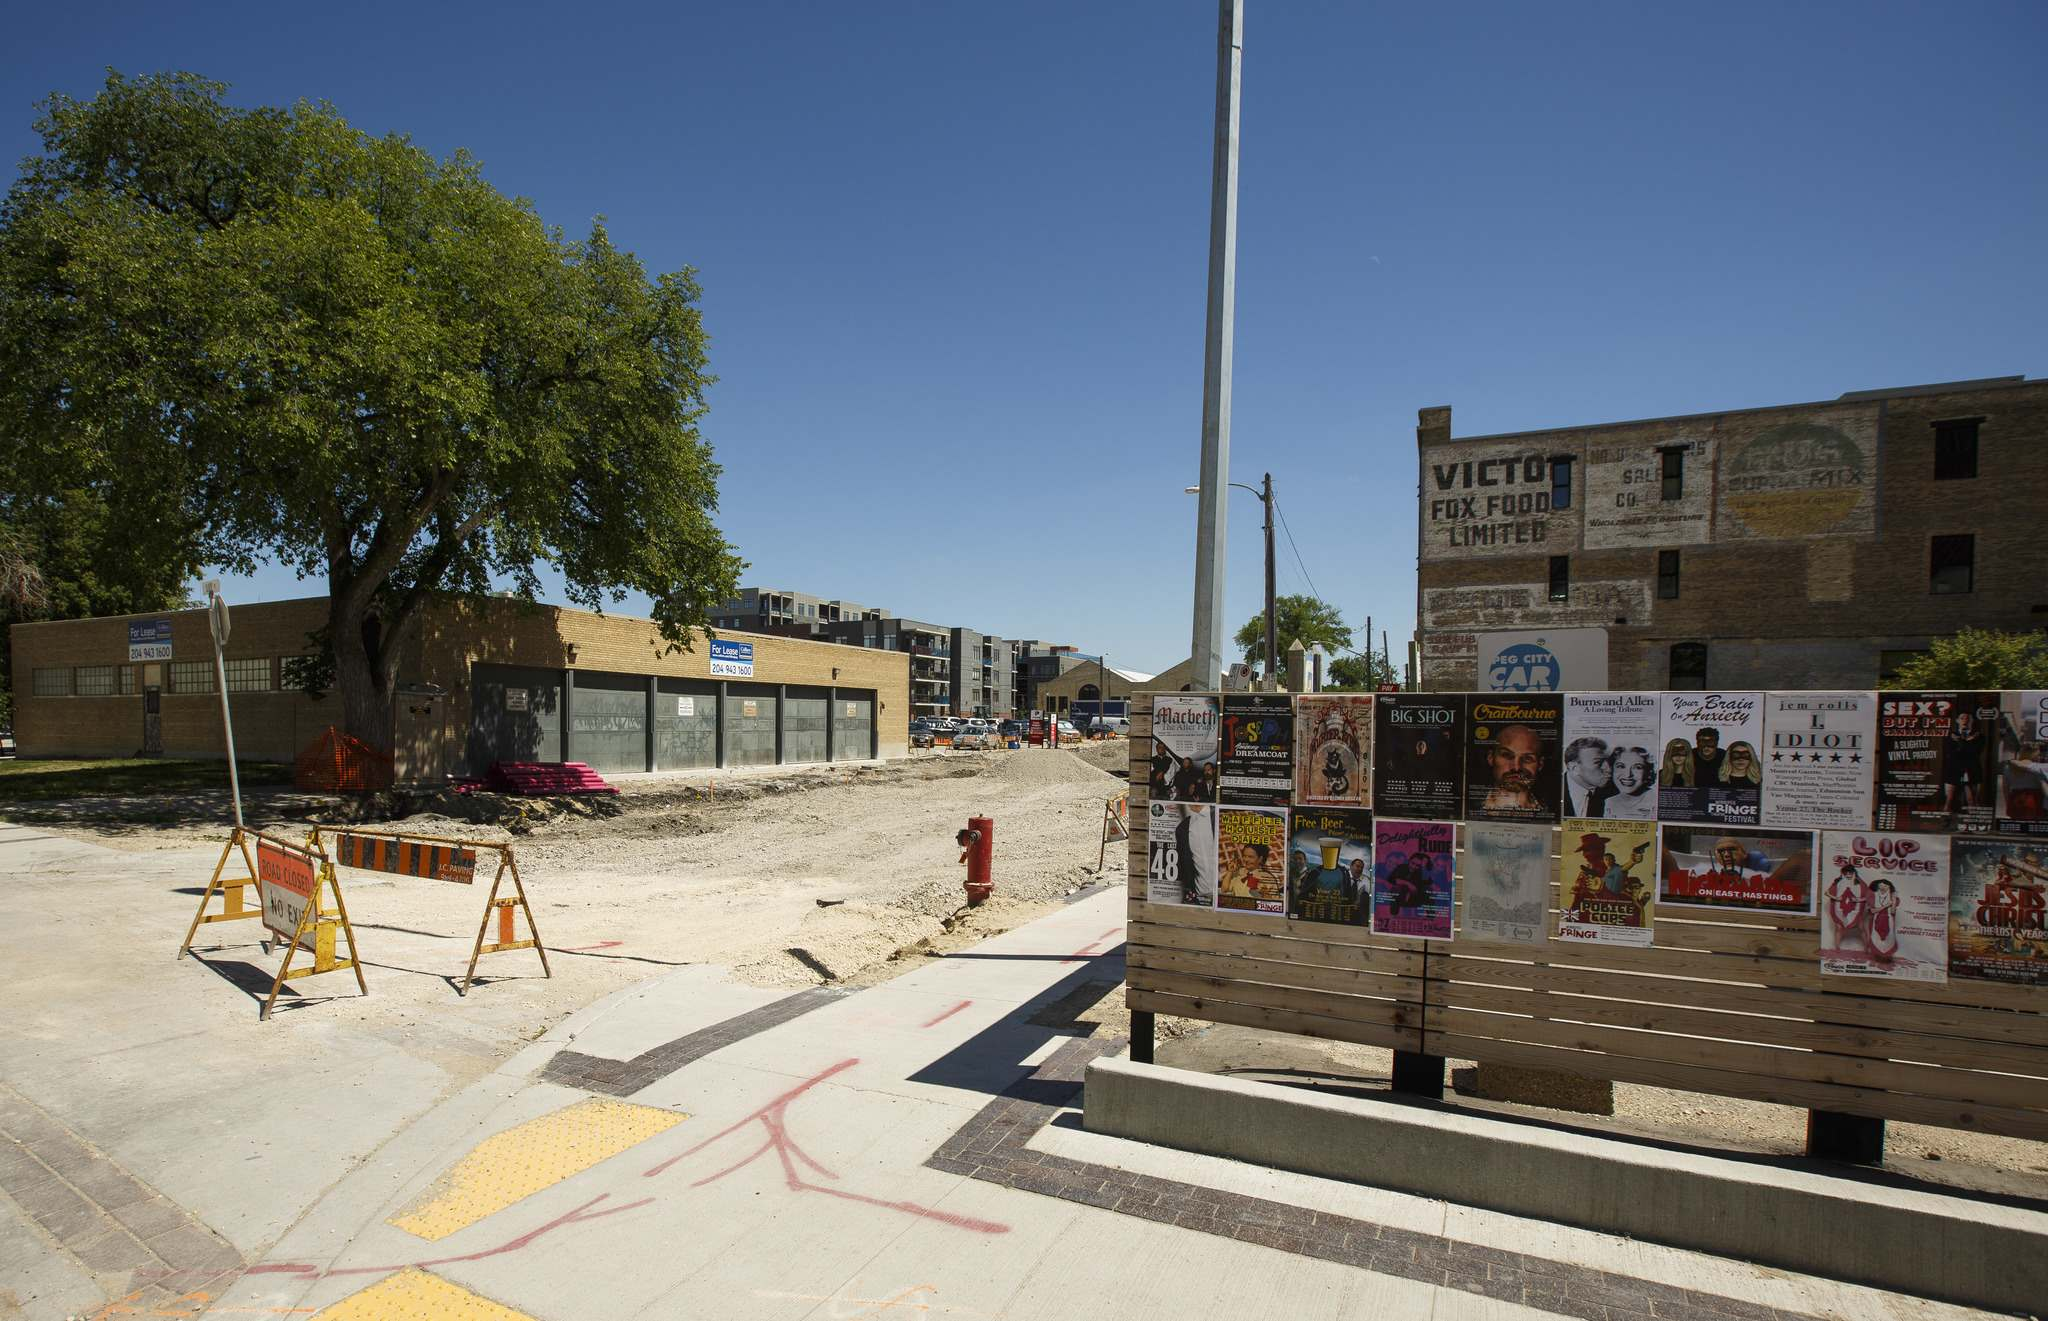 MIKE DEAL / WINNIPEG FREE PRESS Construction in the East Exchange District has reduced the number of parking spots available for Fringe Festival venues which runs from July 18-29. 180717 - Tuesday, July 17, 2018.</p>